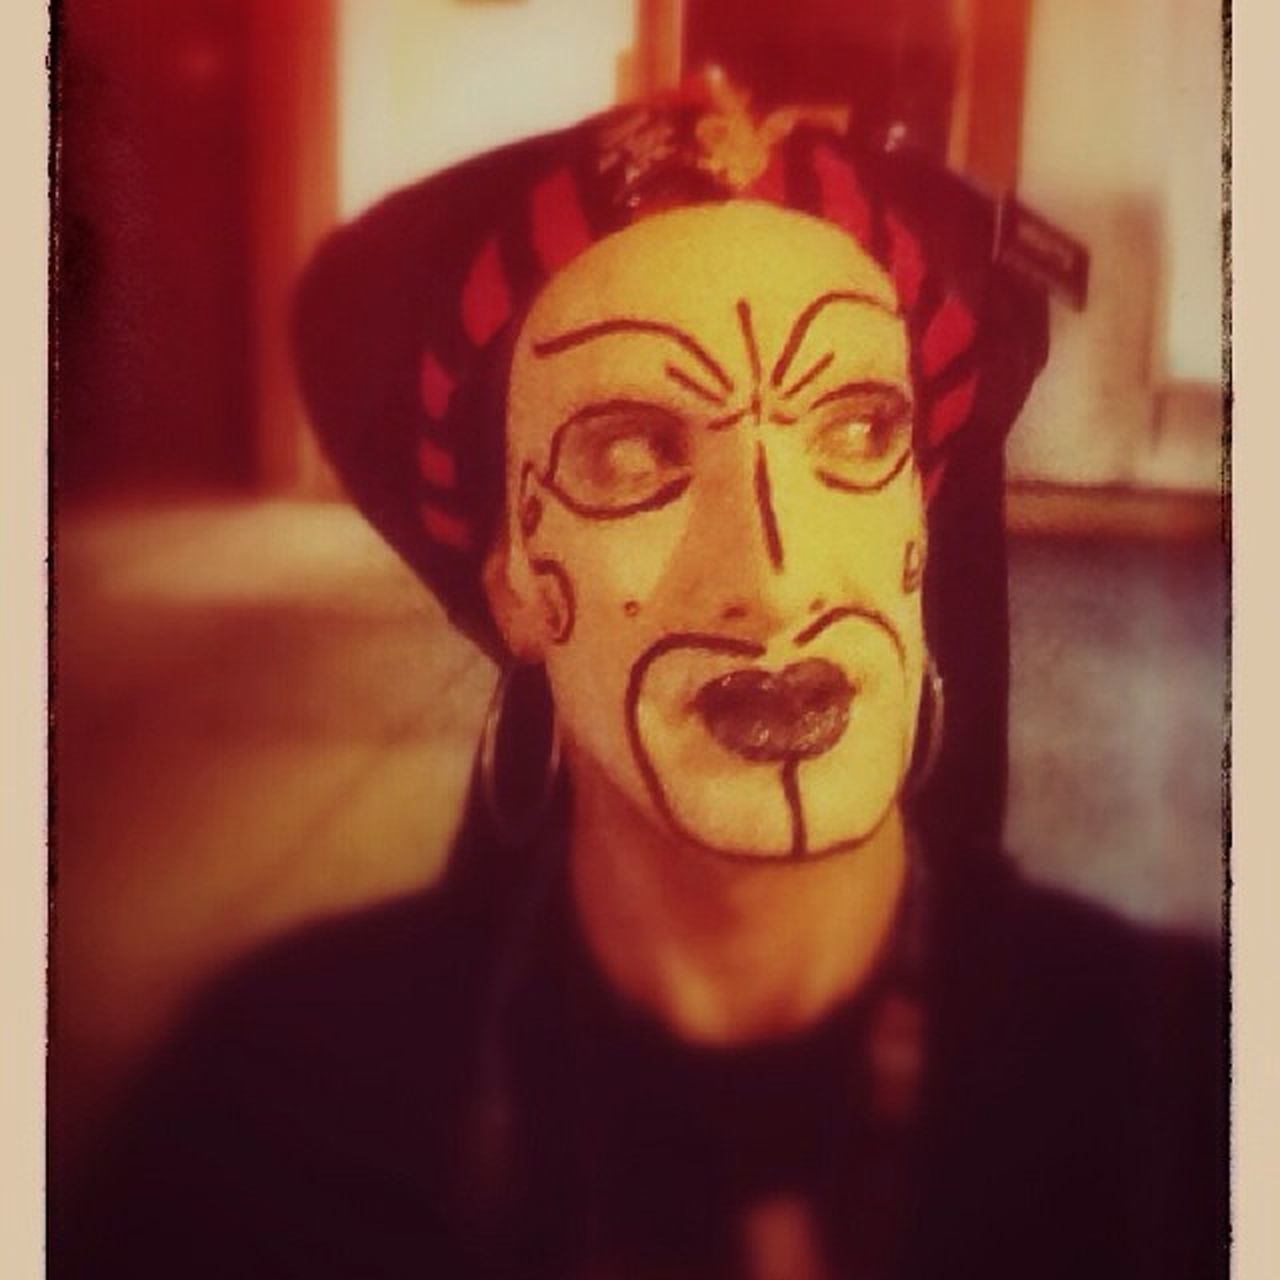 one person, front view, disguise, indoors, spooky, home interior, face paint, looking at camera, halloween, real people, portrait, headshot, anthropomorphic face, close-up, lifestyles, young adult, one man only, night, clown, only men, adults only, people, adult